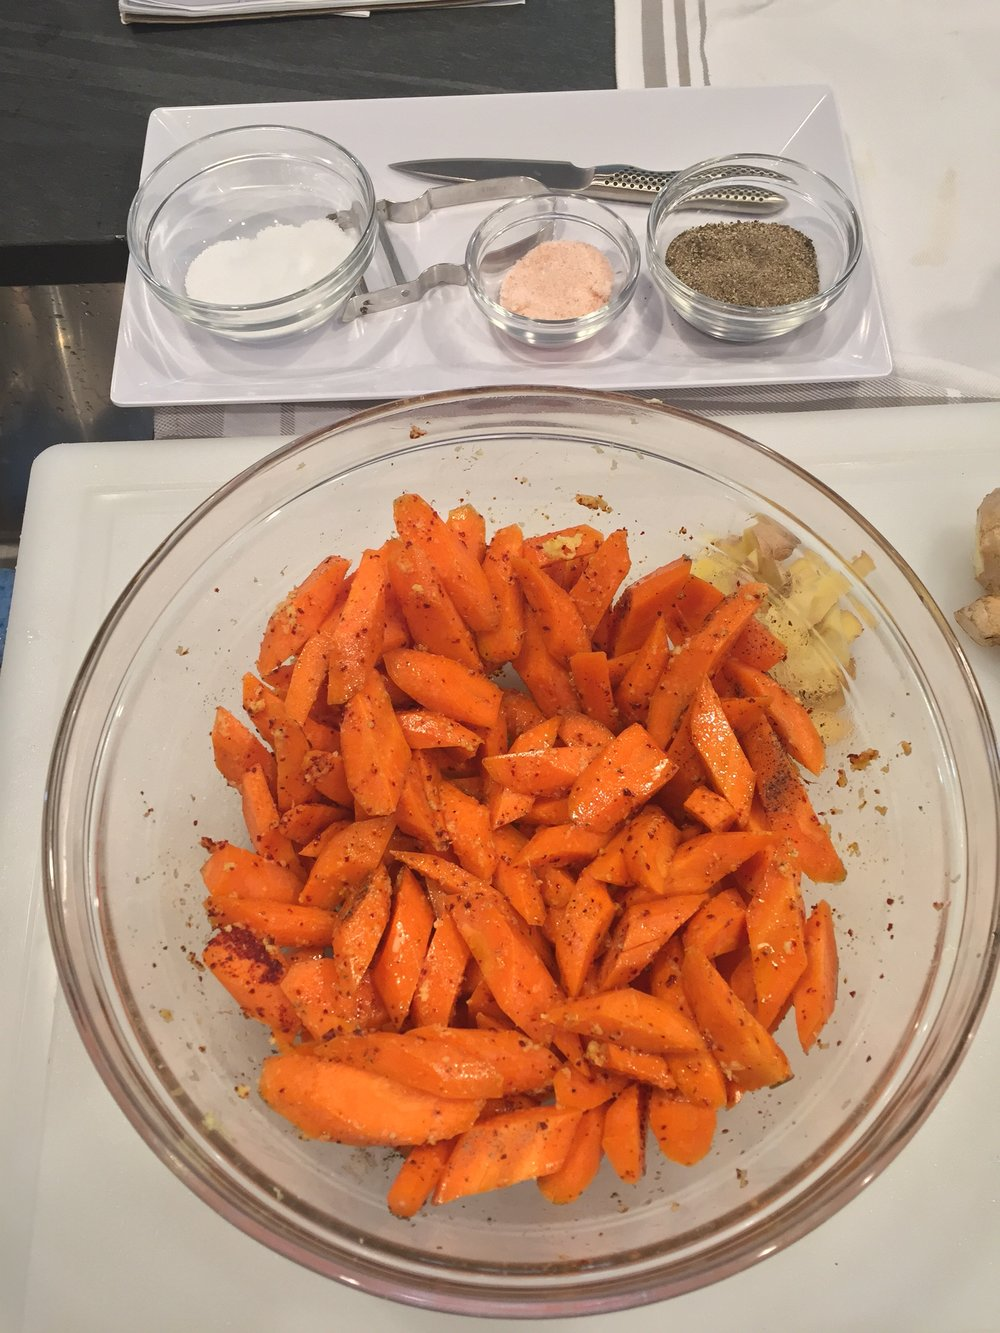 Roasted carrots with spices